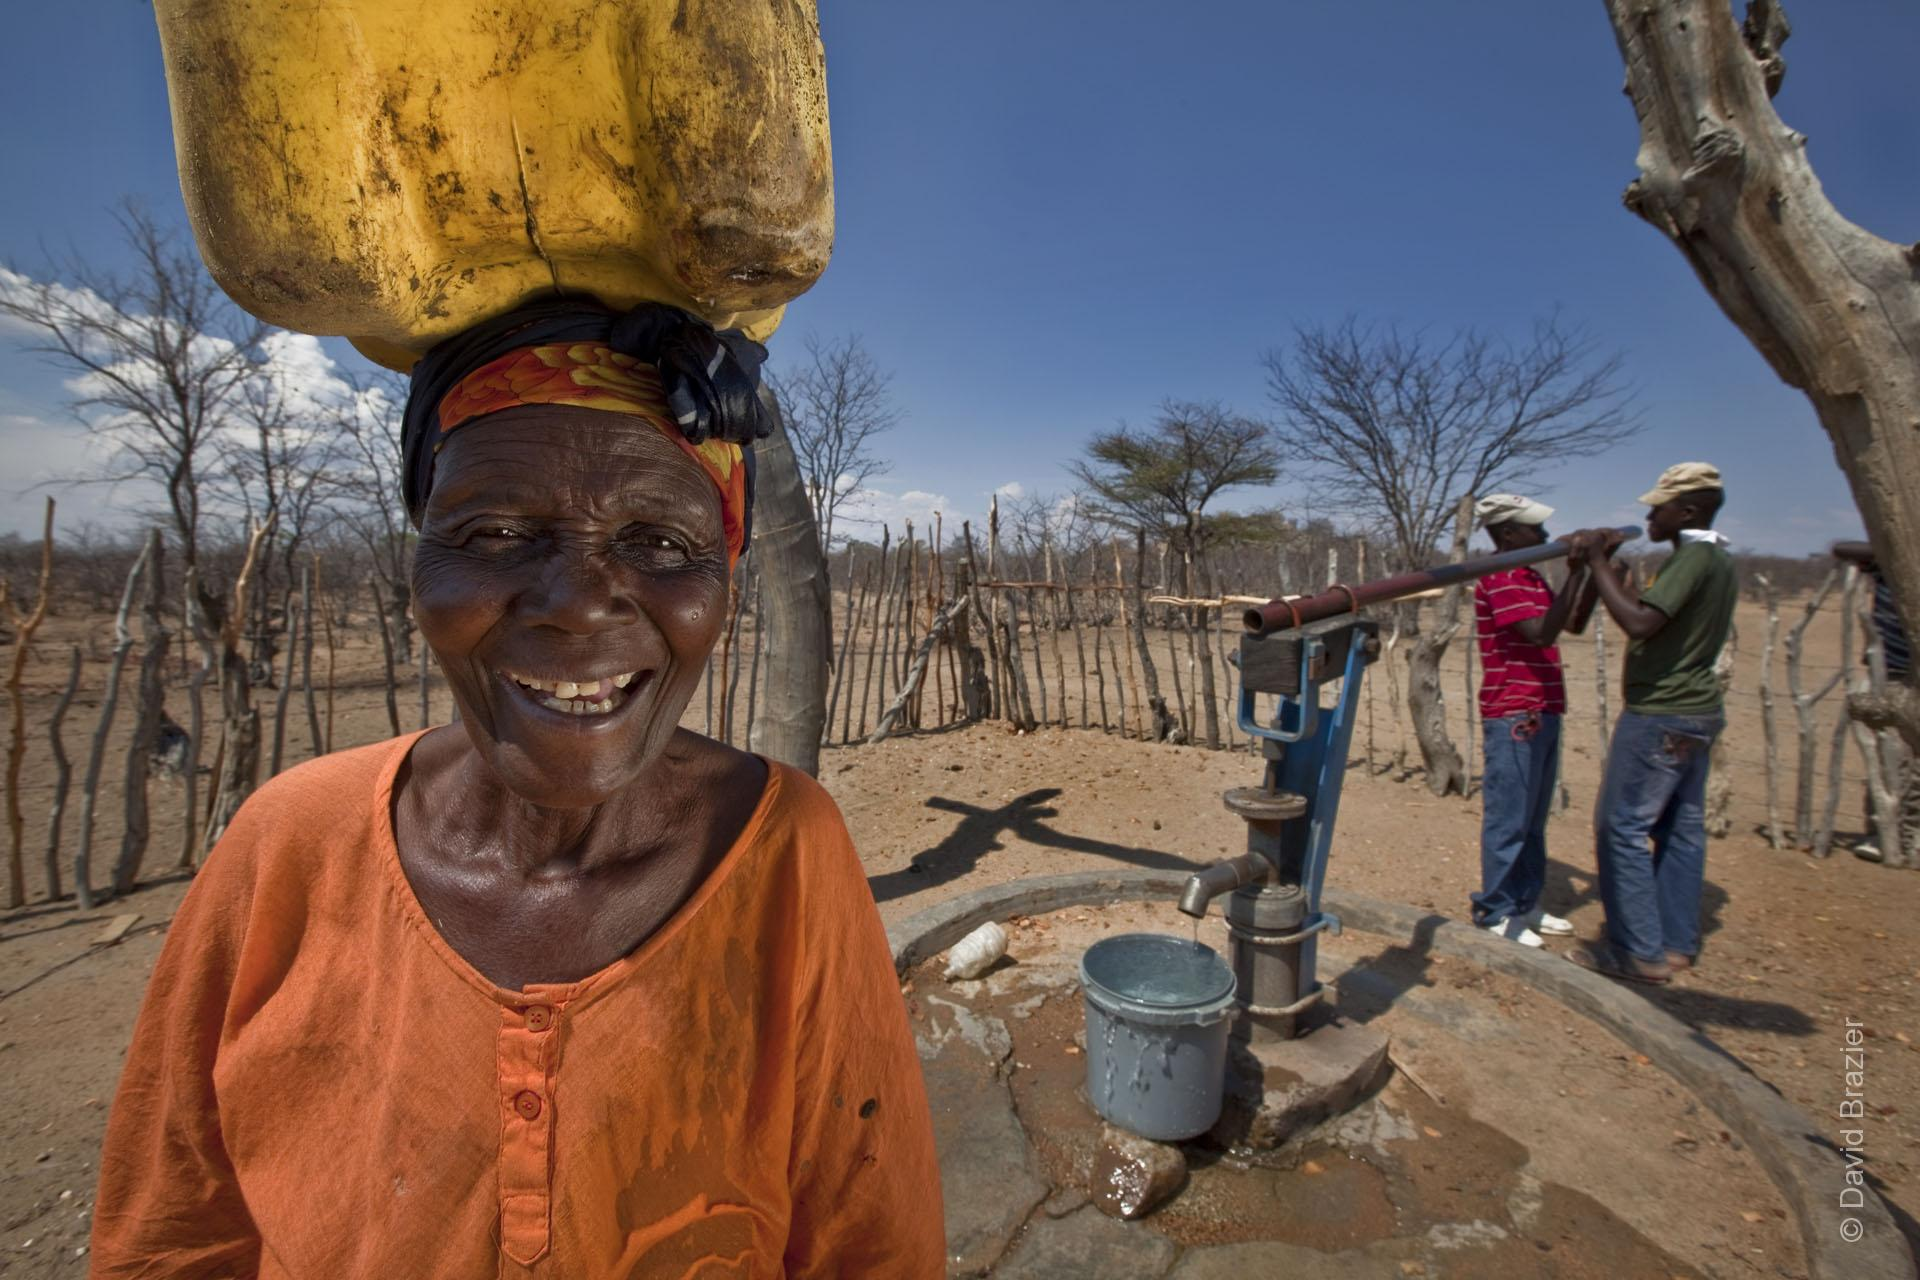 African woman carrying water on her head with men at a pump in the background